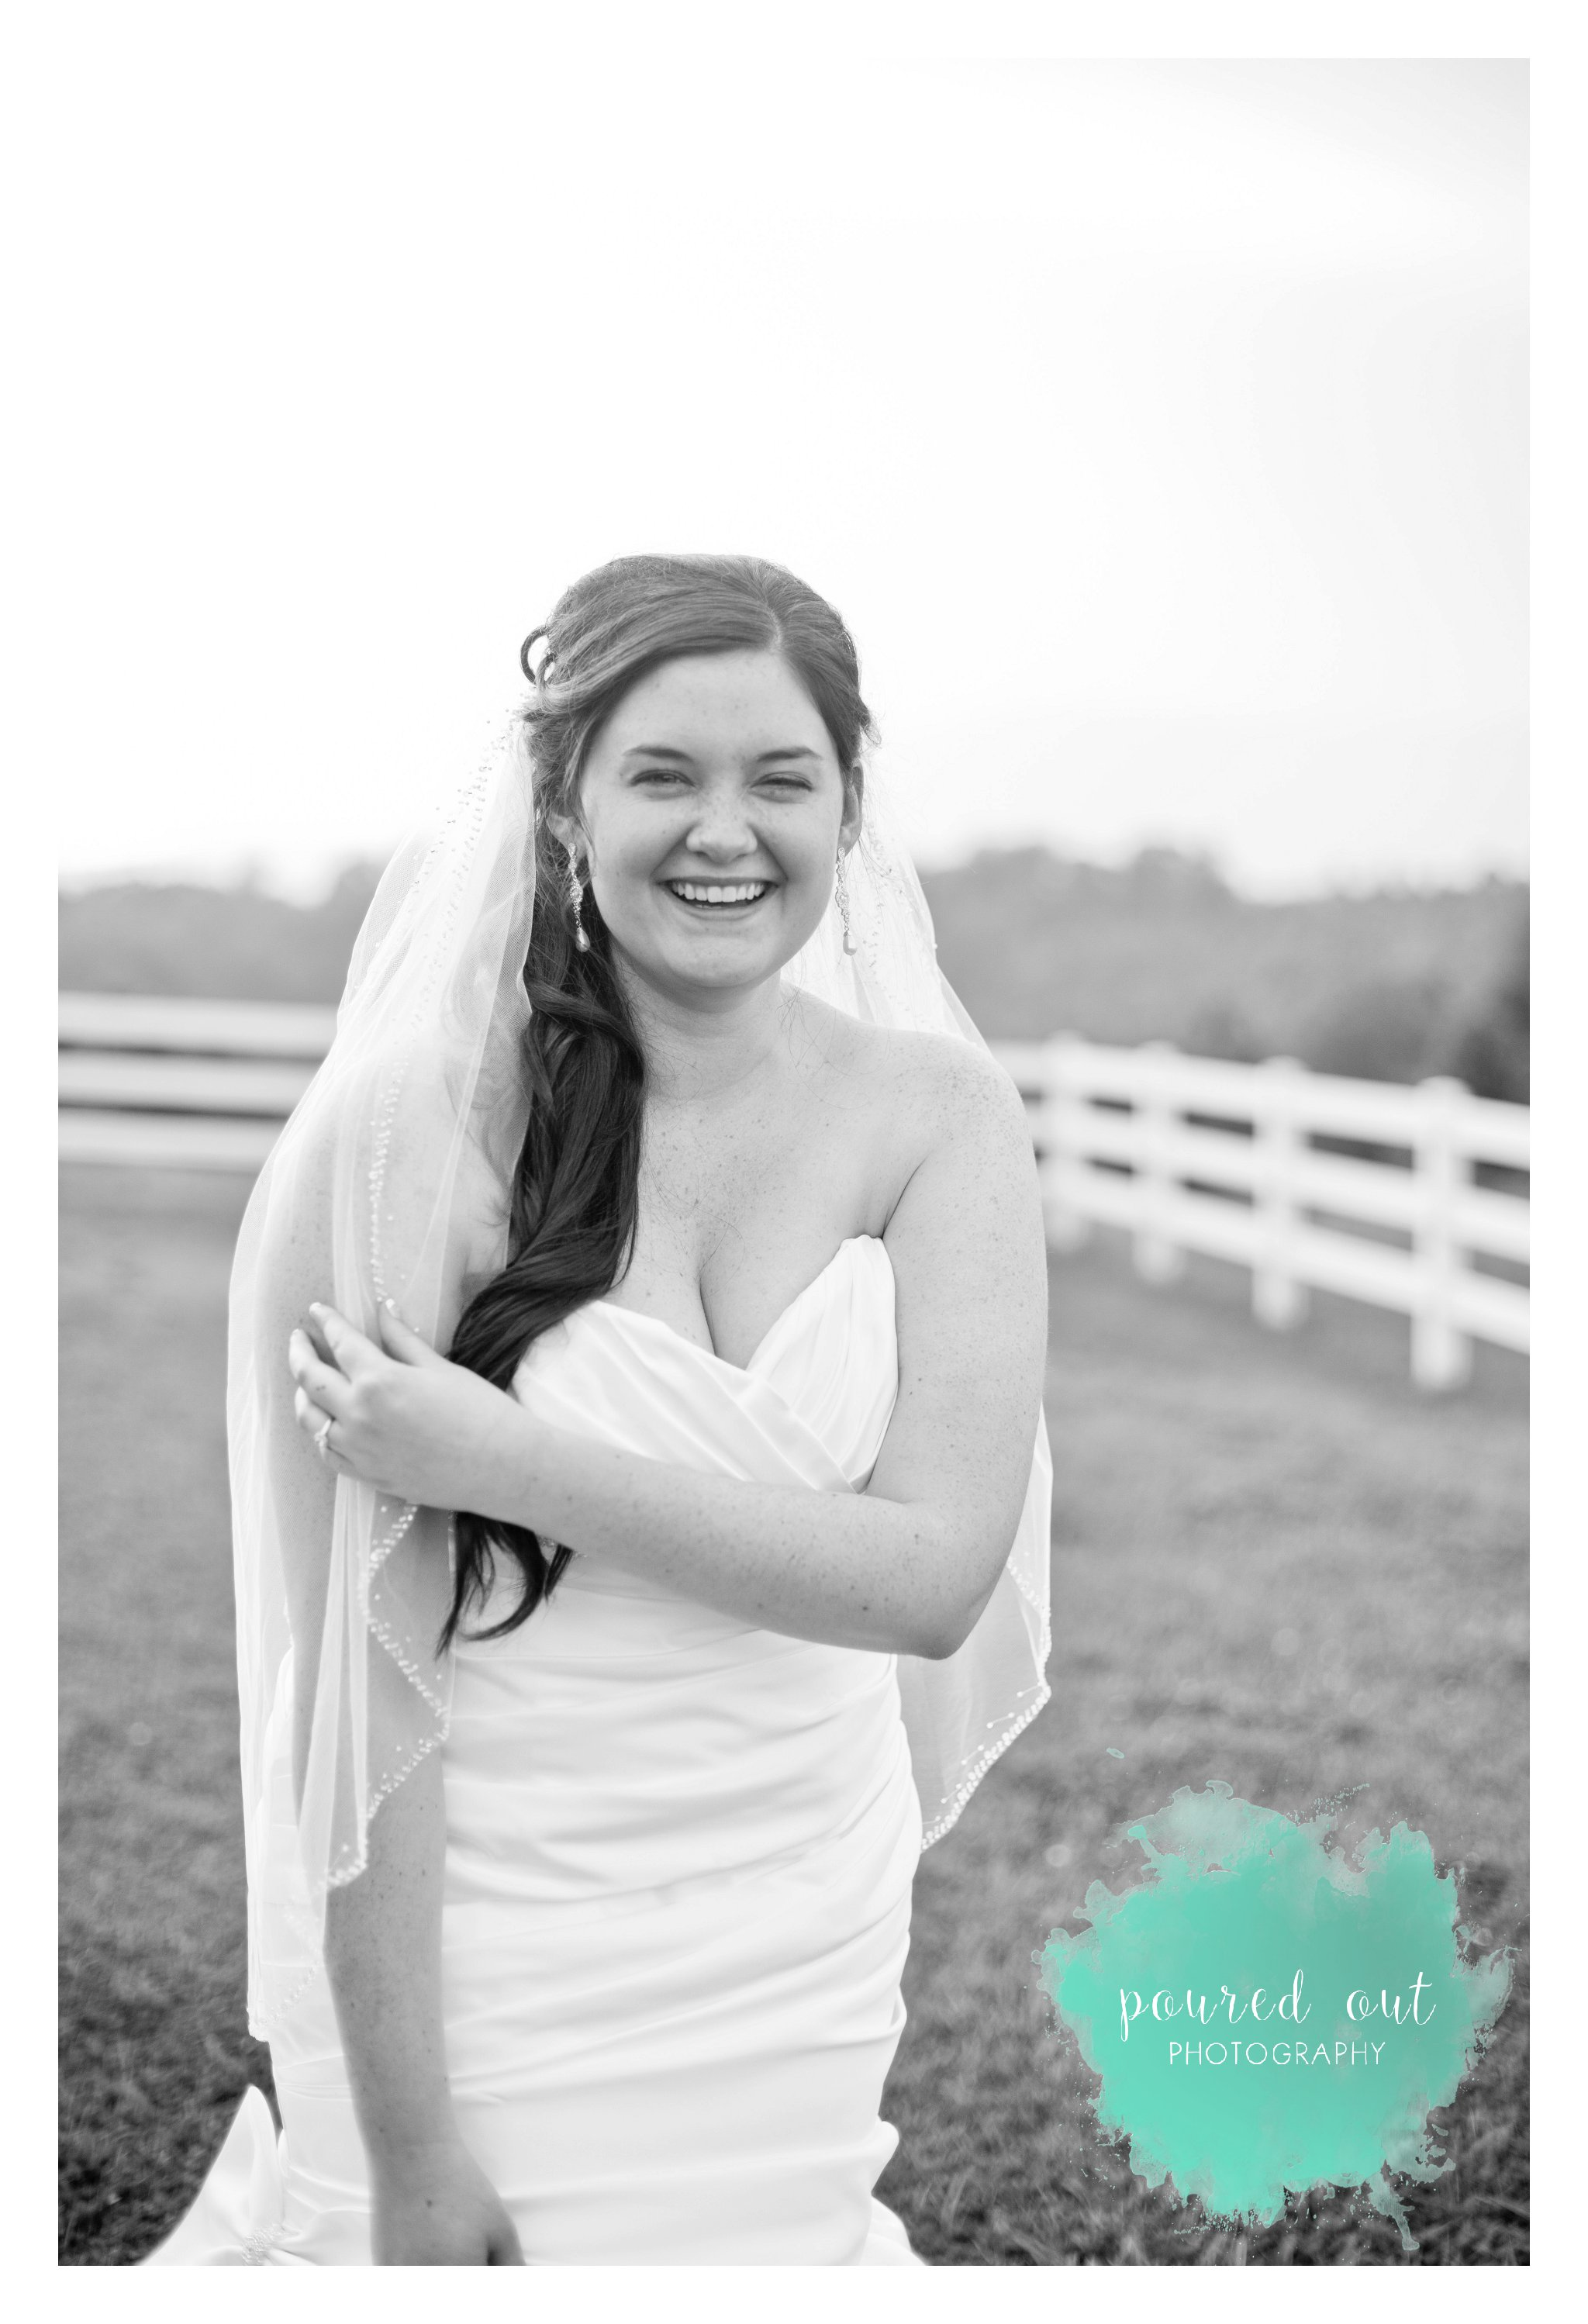 april_bridal_poured_out_photography-91_WEB.jpg